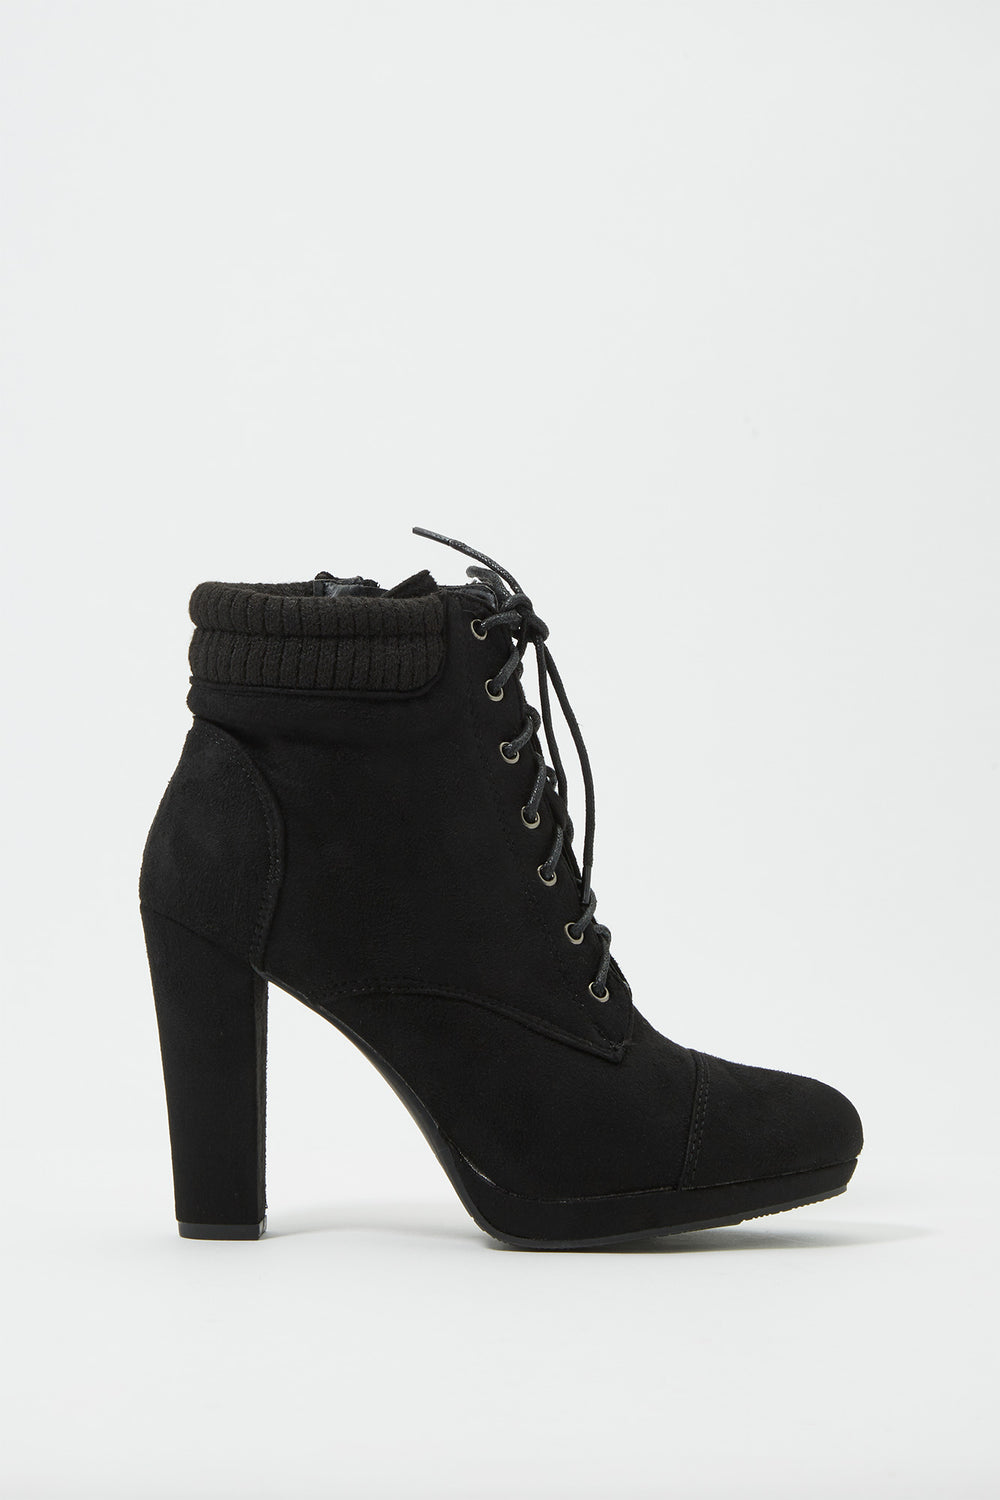 Knit Lace-Up Heel Bootie Black